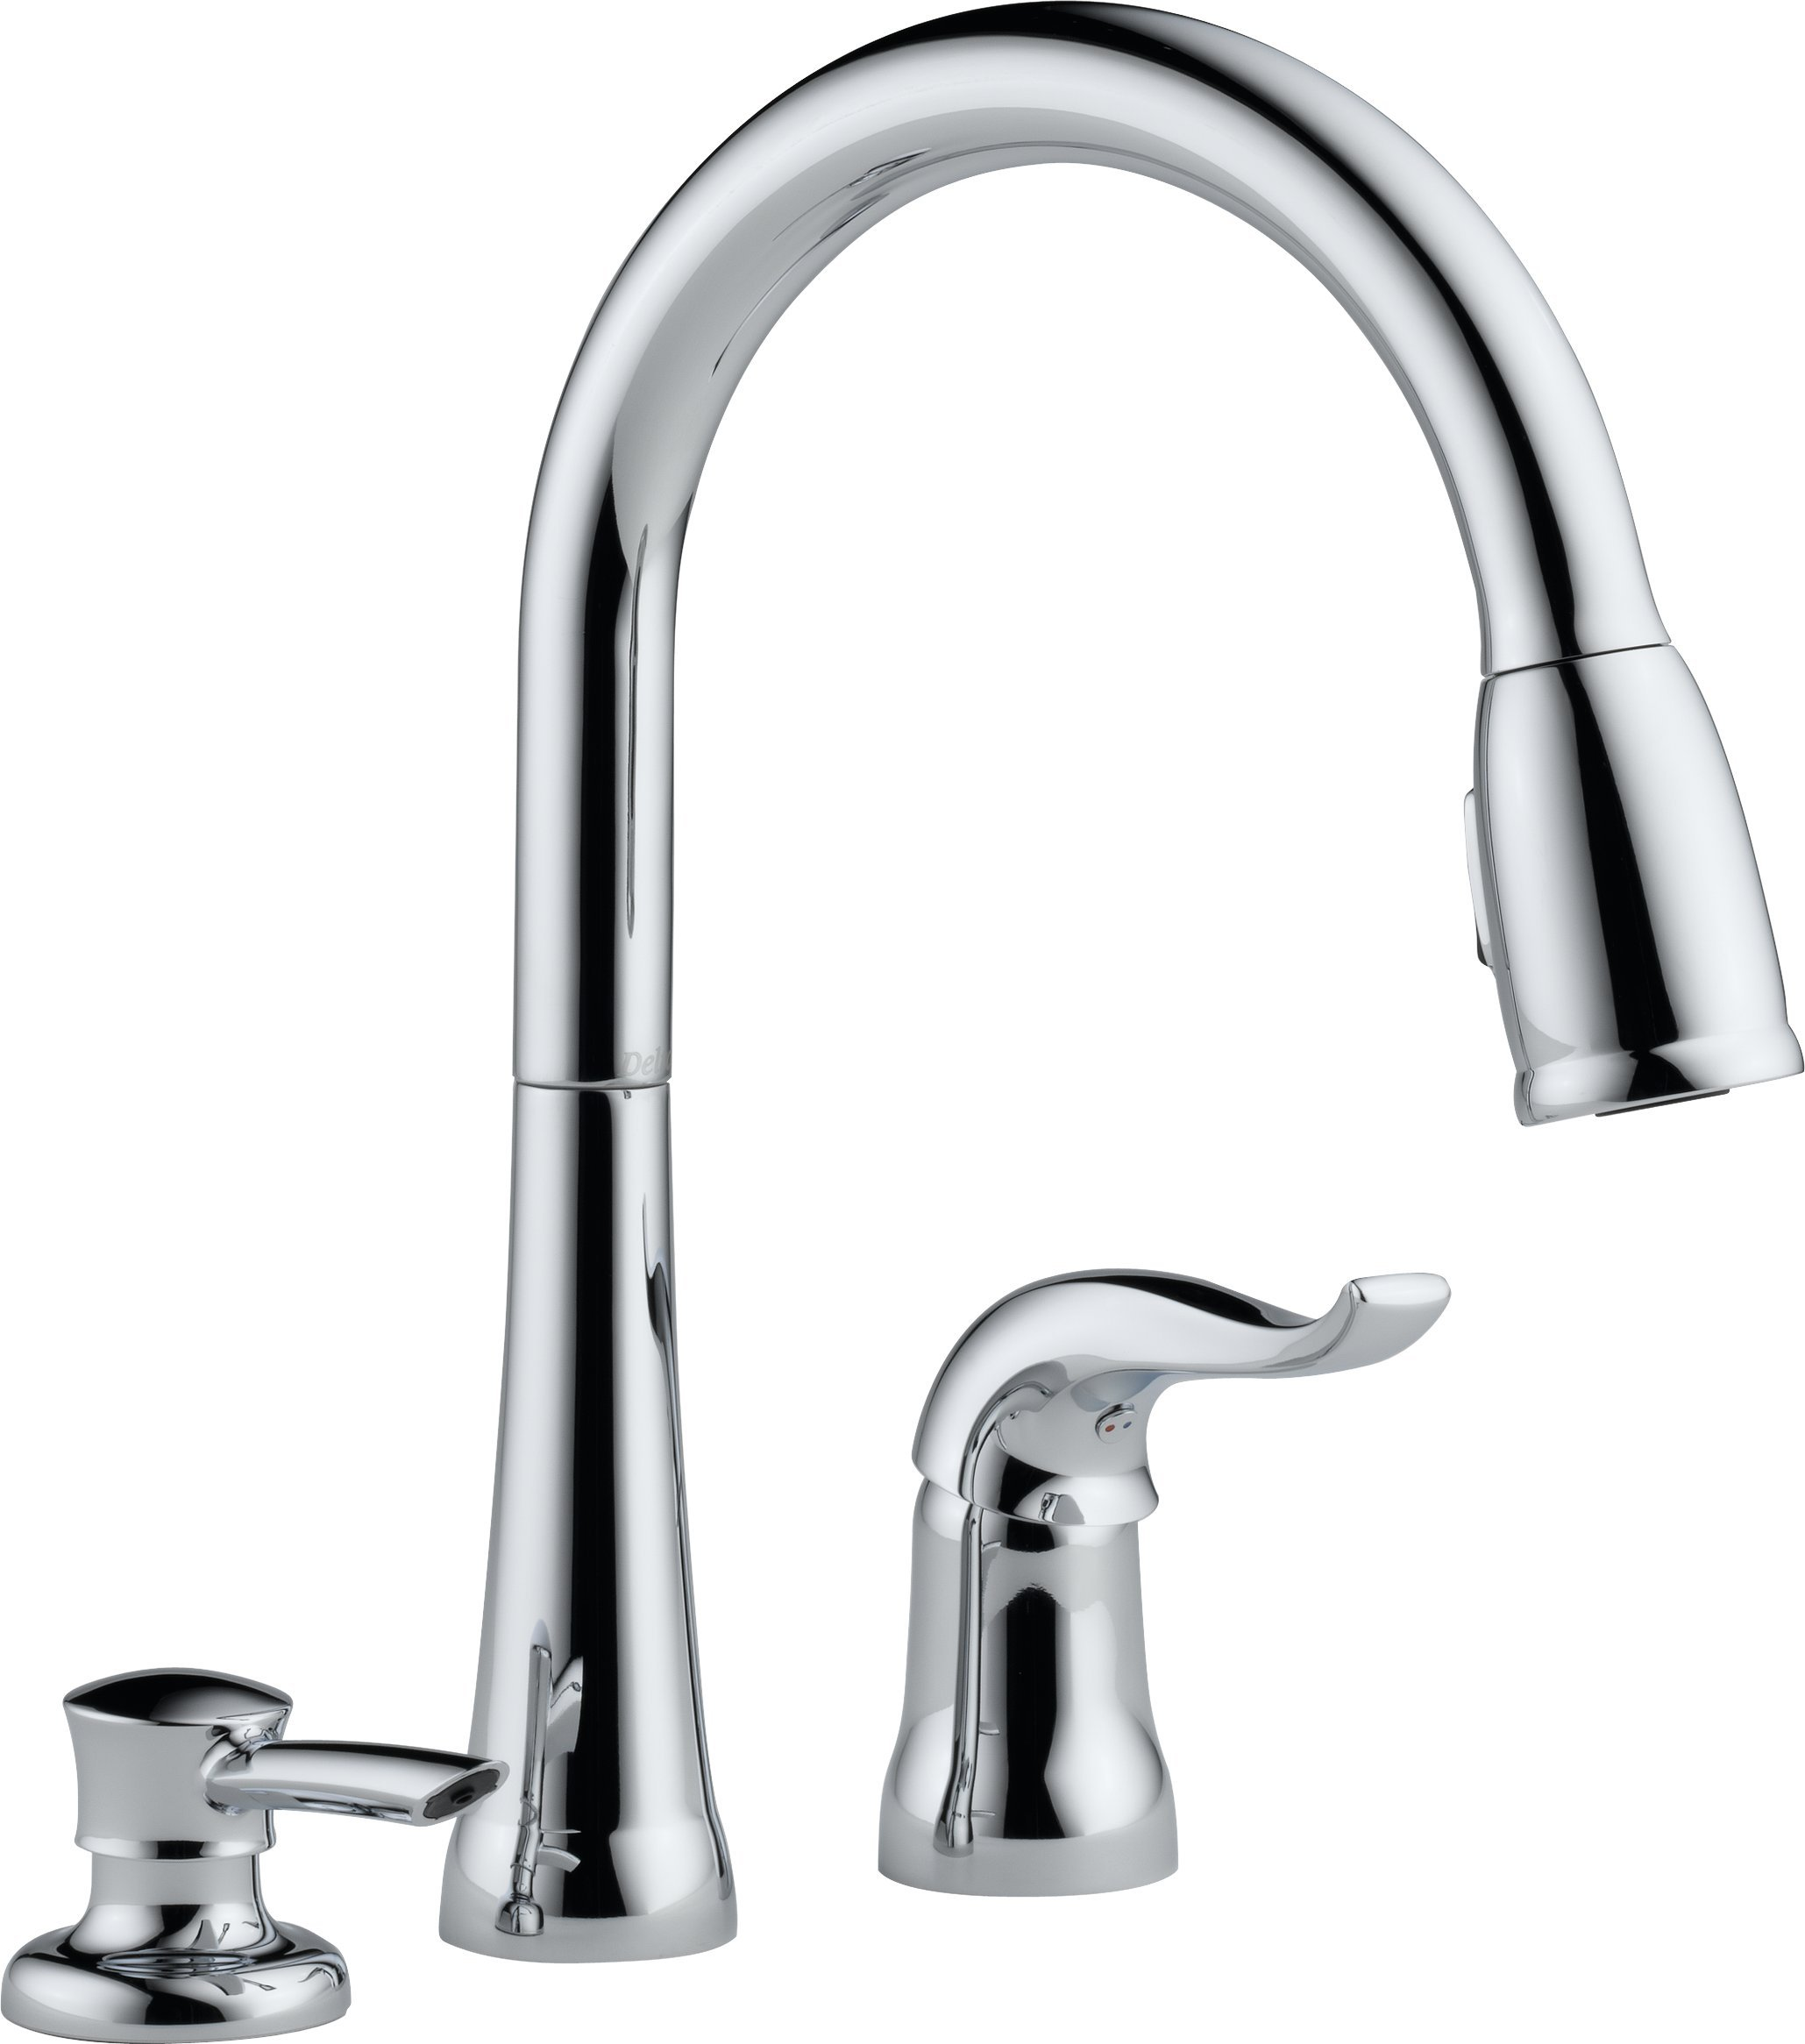 Delta 16970-SD-DST Single Handle Pull-Down Kitchen Faucet with Soap Dispenser, Chrome